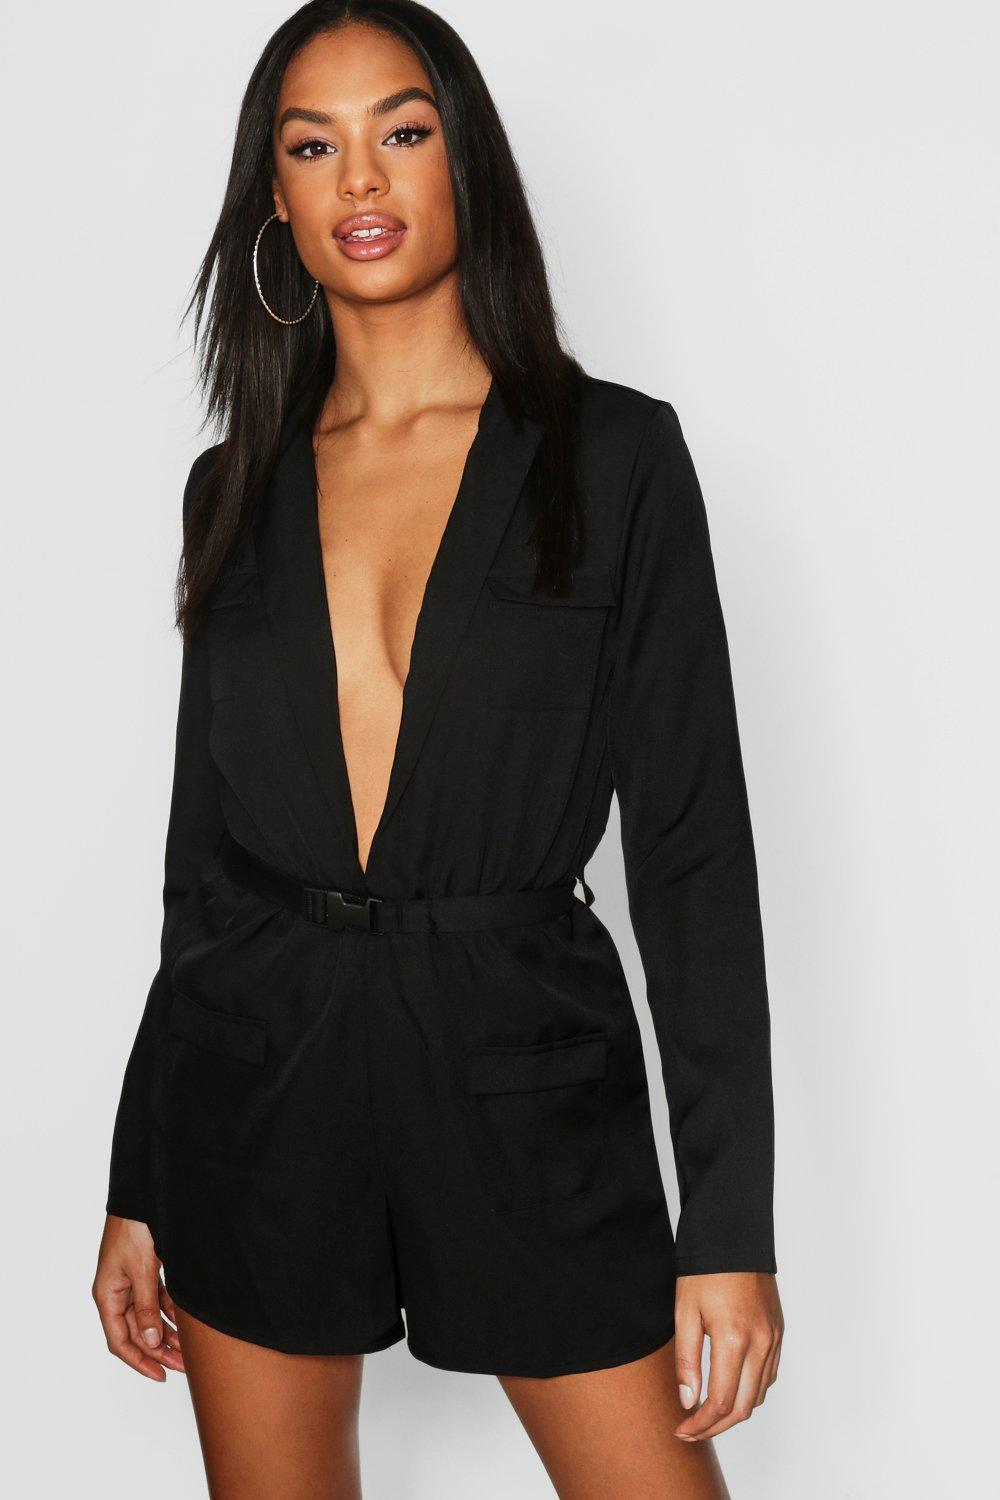 9791d8ffd2 Lyst - Boohoo Tall Utility Style Belted Playsuit in Black